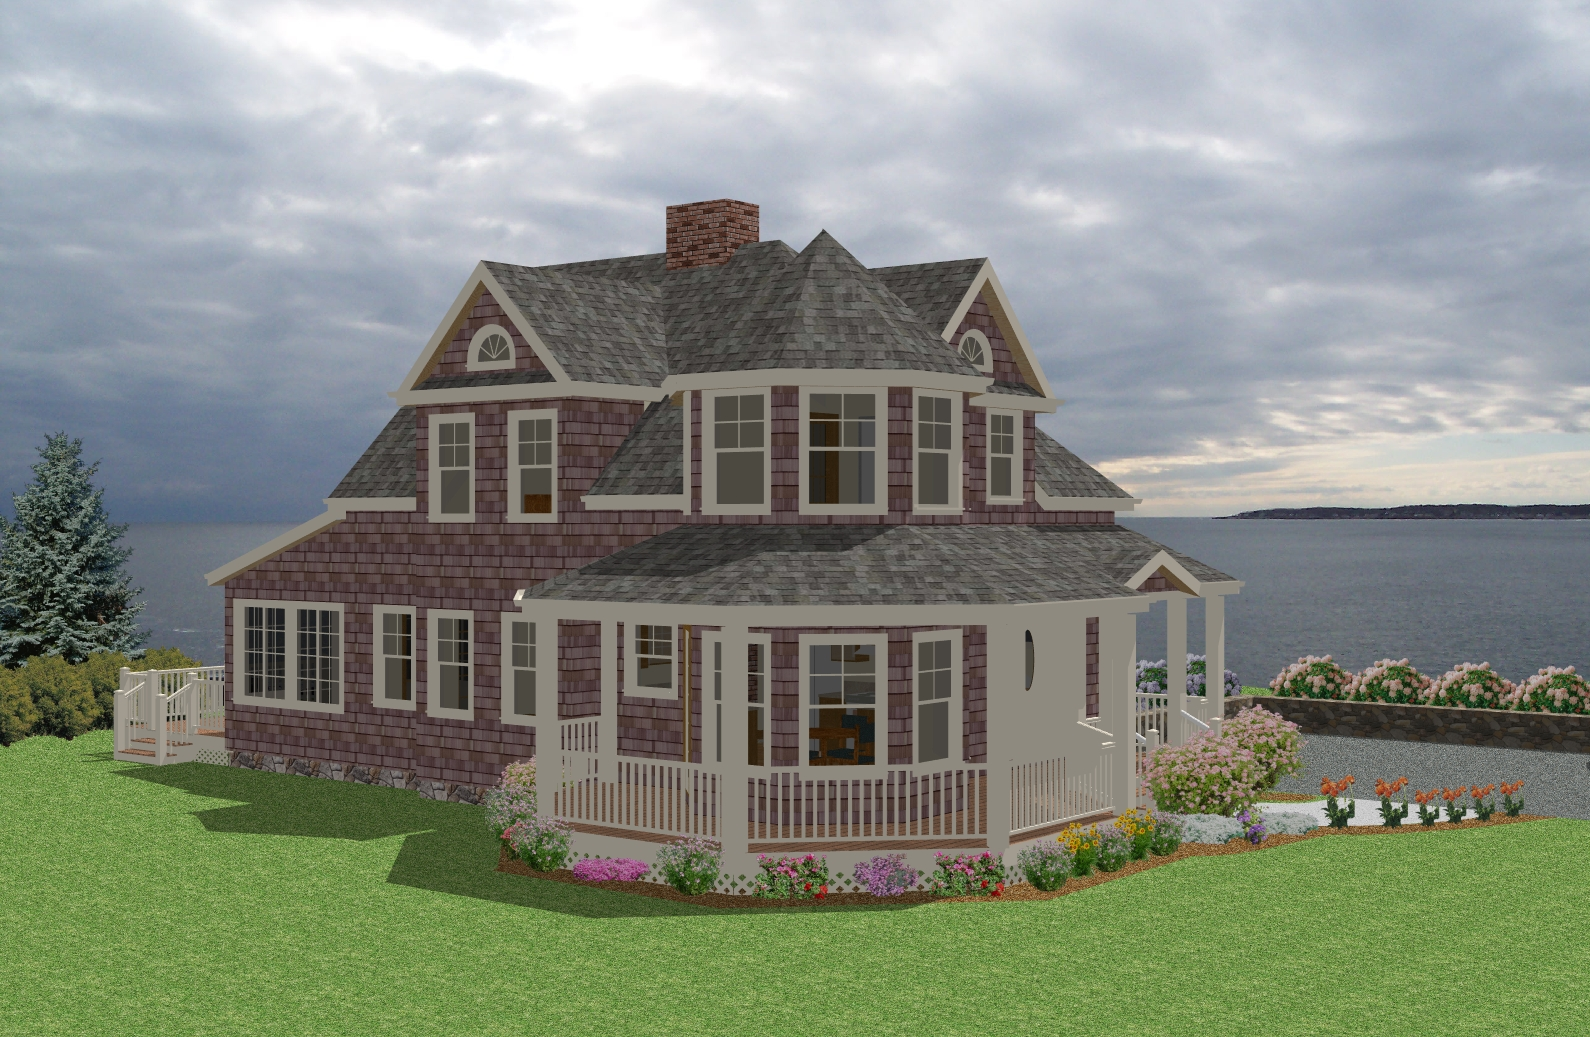 New england cottage house plans find house plans for Find house plans